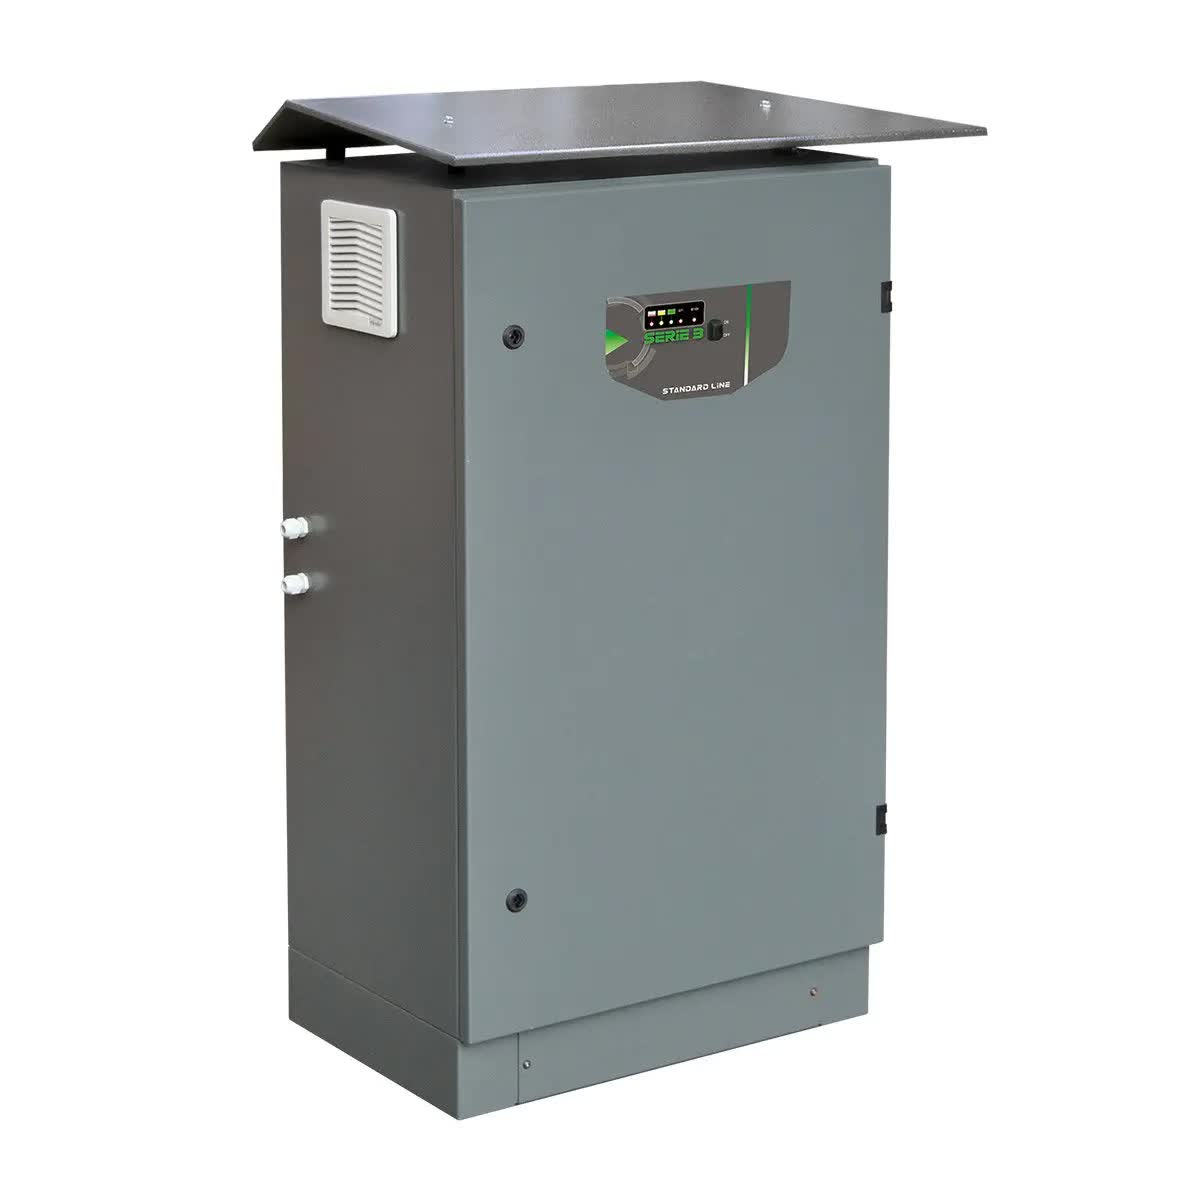 Chargeurs pour batteries plomb-acide, Italy, ATIB Elettronica